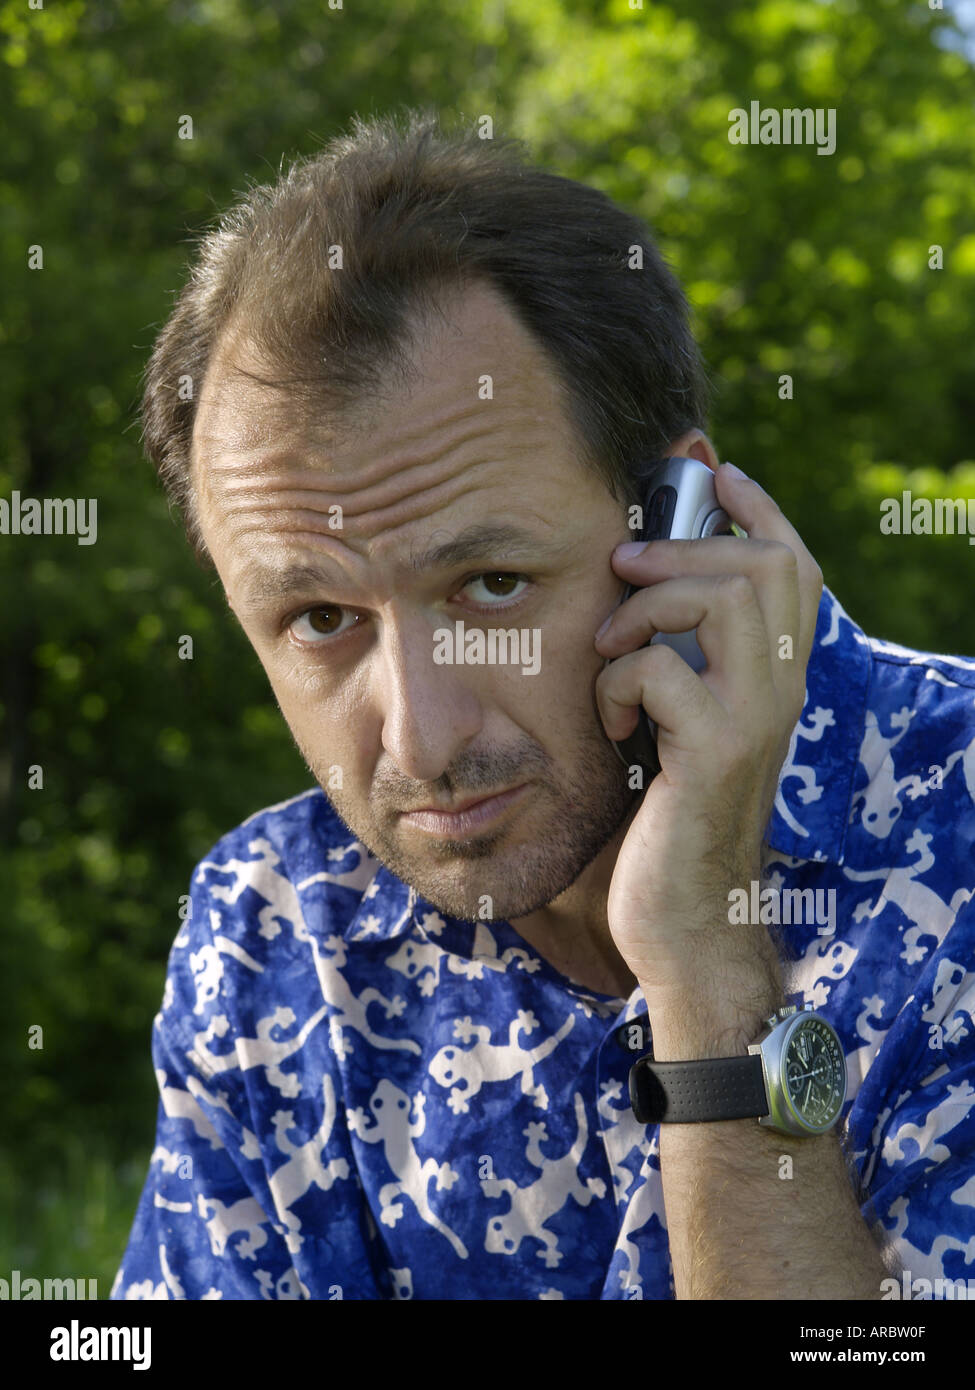 Man with blue shirt and mobile phone outdoors Stock Photo